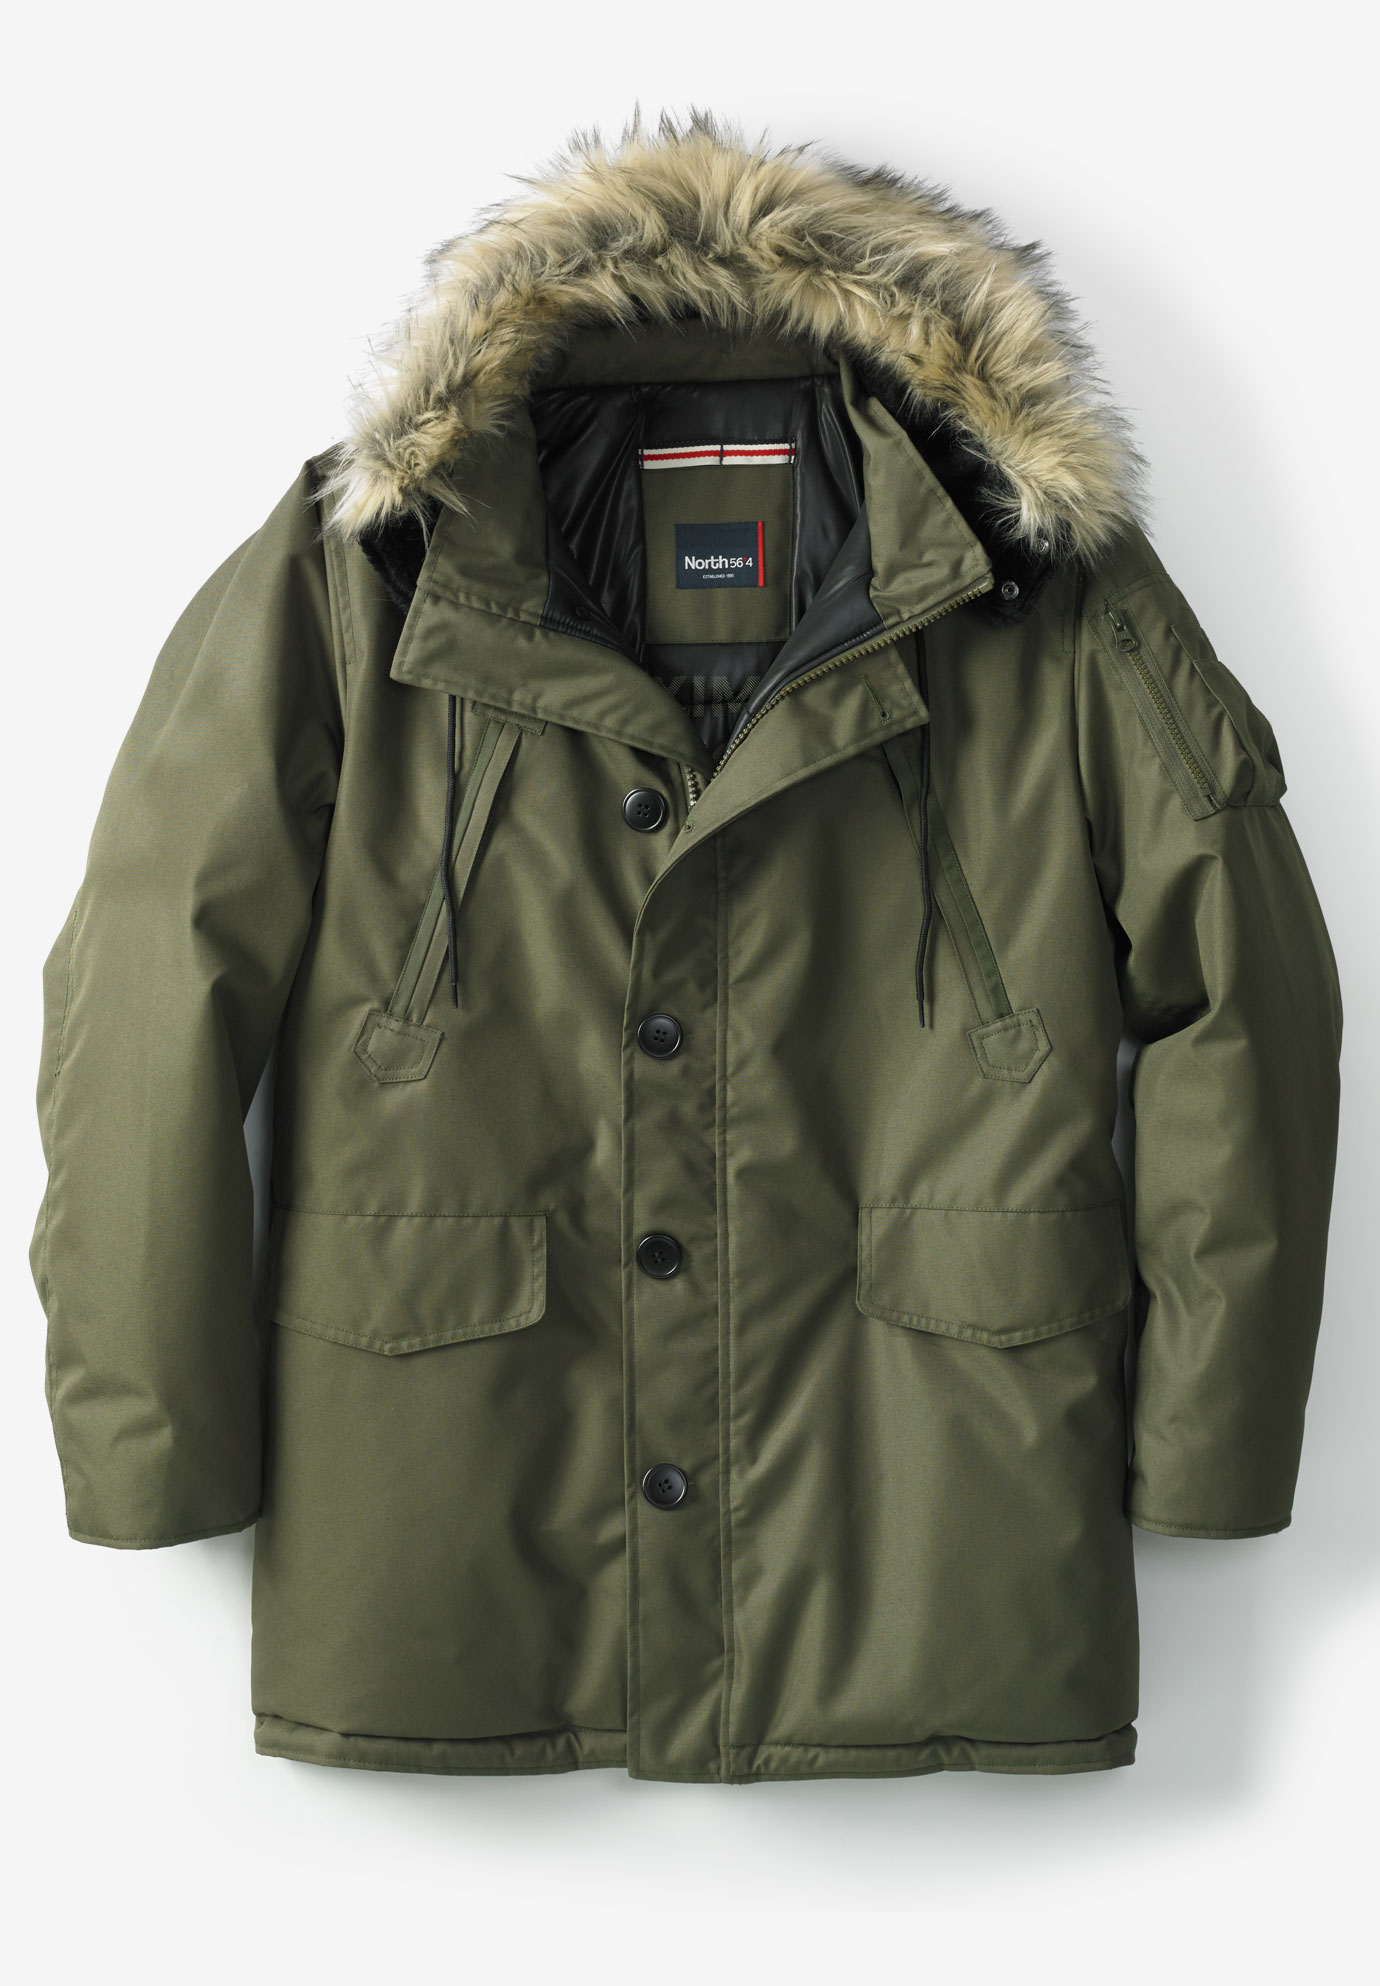 North 56°4 Padded Parka Jacket,